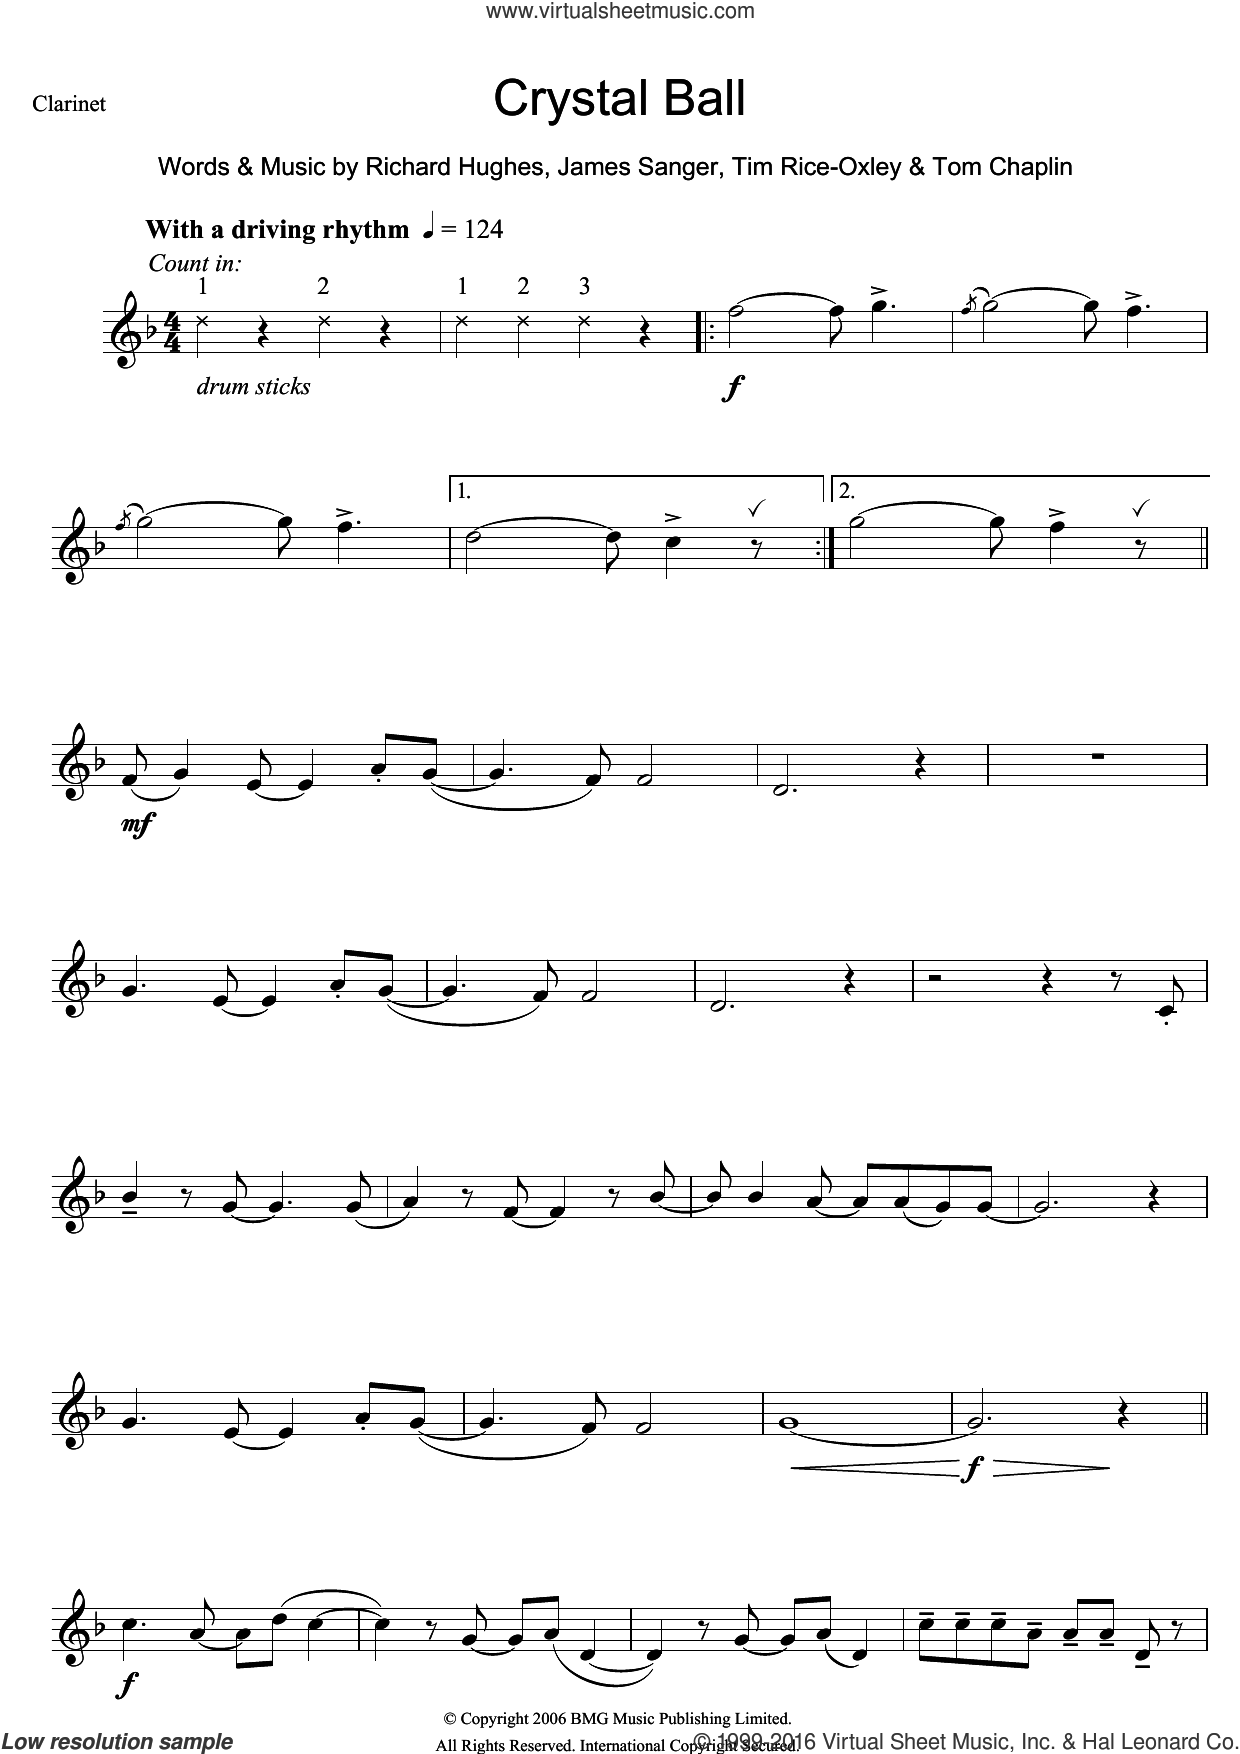 Crystal Ball sheet music for clarinet solo by Tim Rice-Oxley, James Sanger, Richard Hughes and Tom Chaplin, intermediate skill level